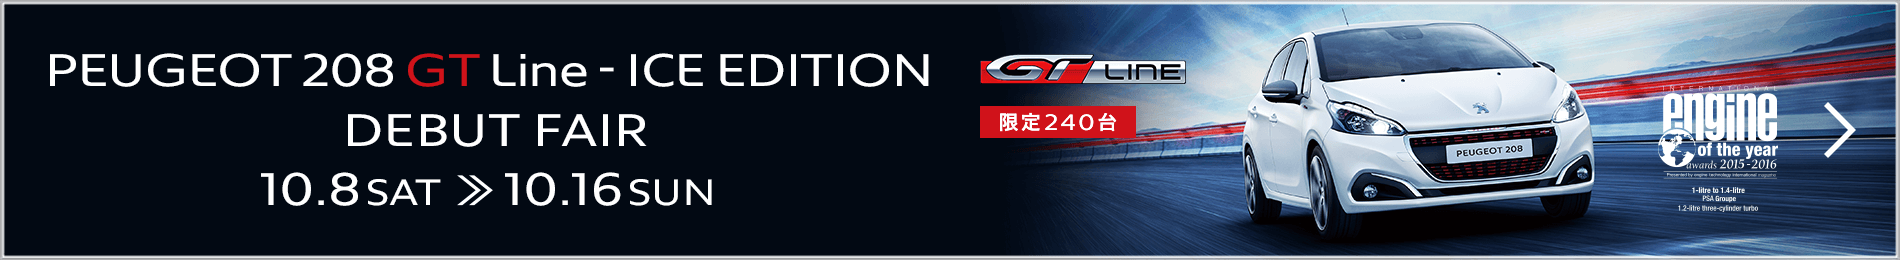 PEUGEOT 208 GT Line - ICE EDITION DEBUT FAIR 10.8 SAT » 10.16 SUN 詳しくはこちら>